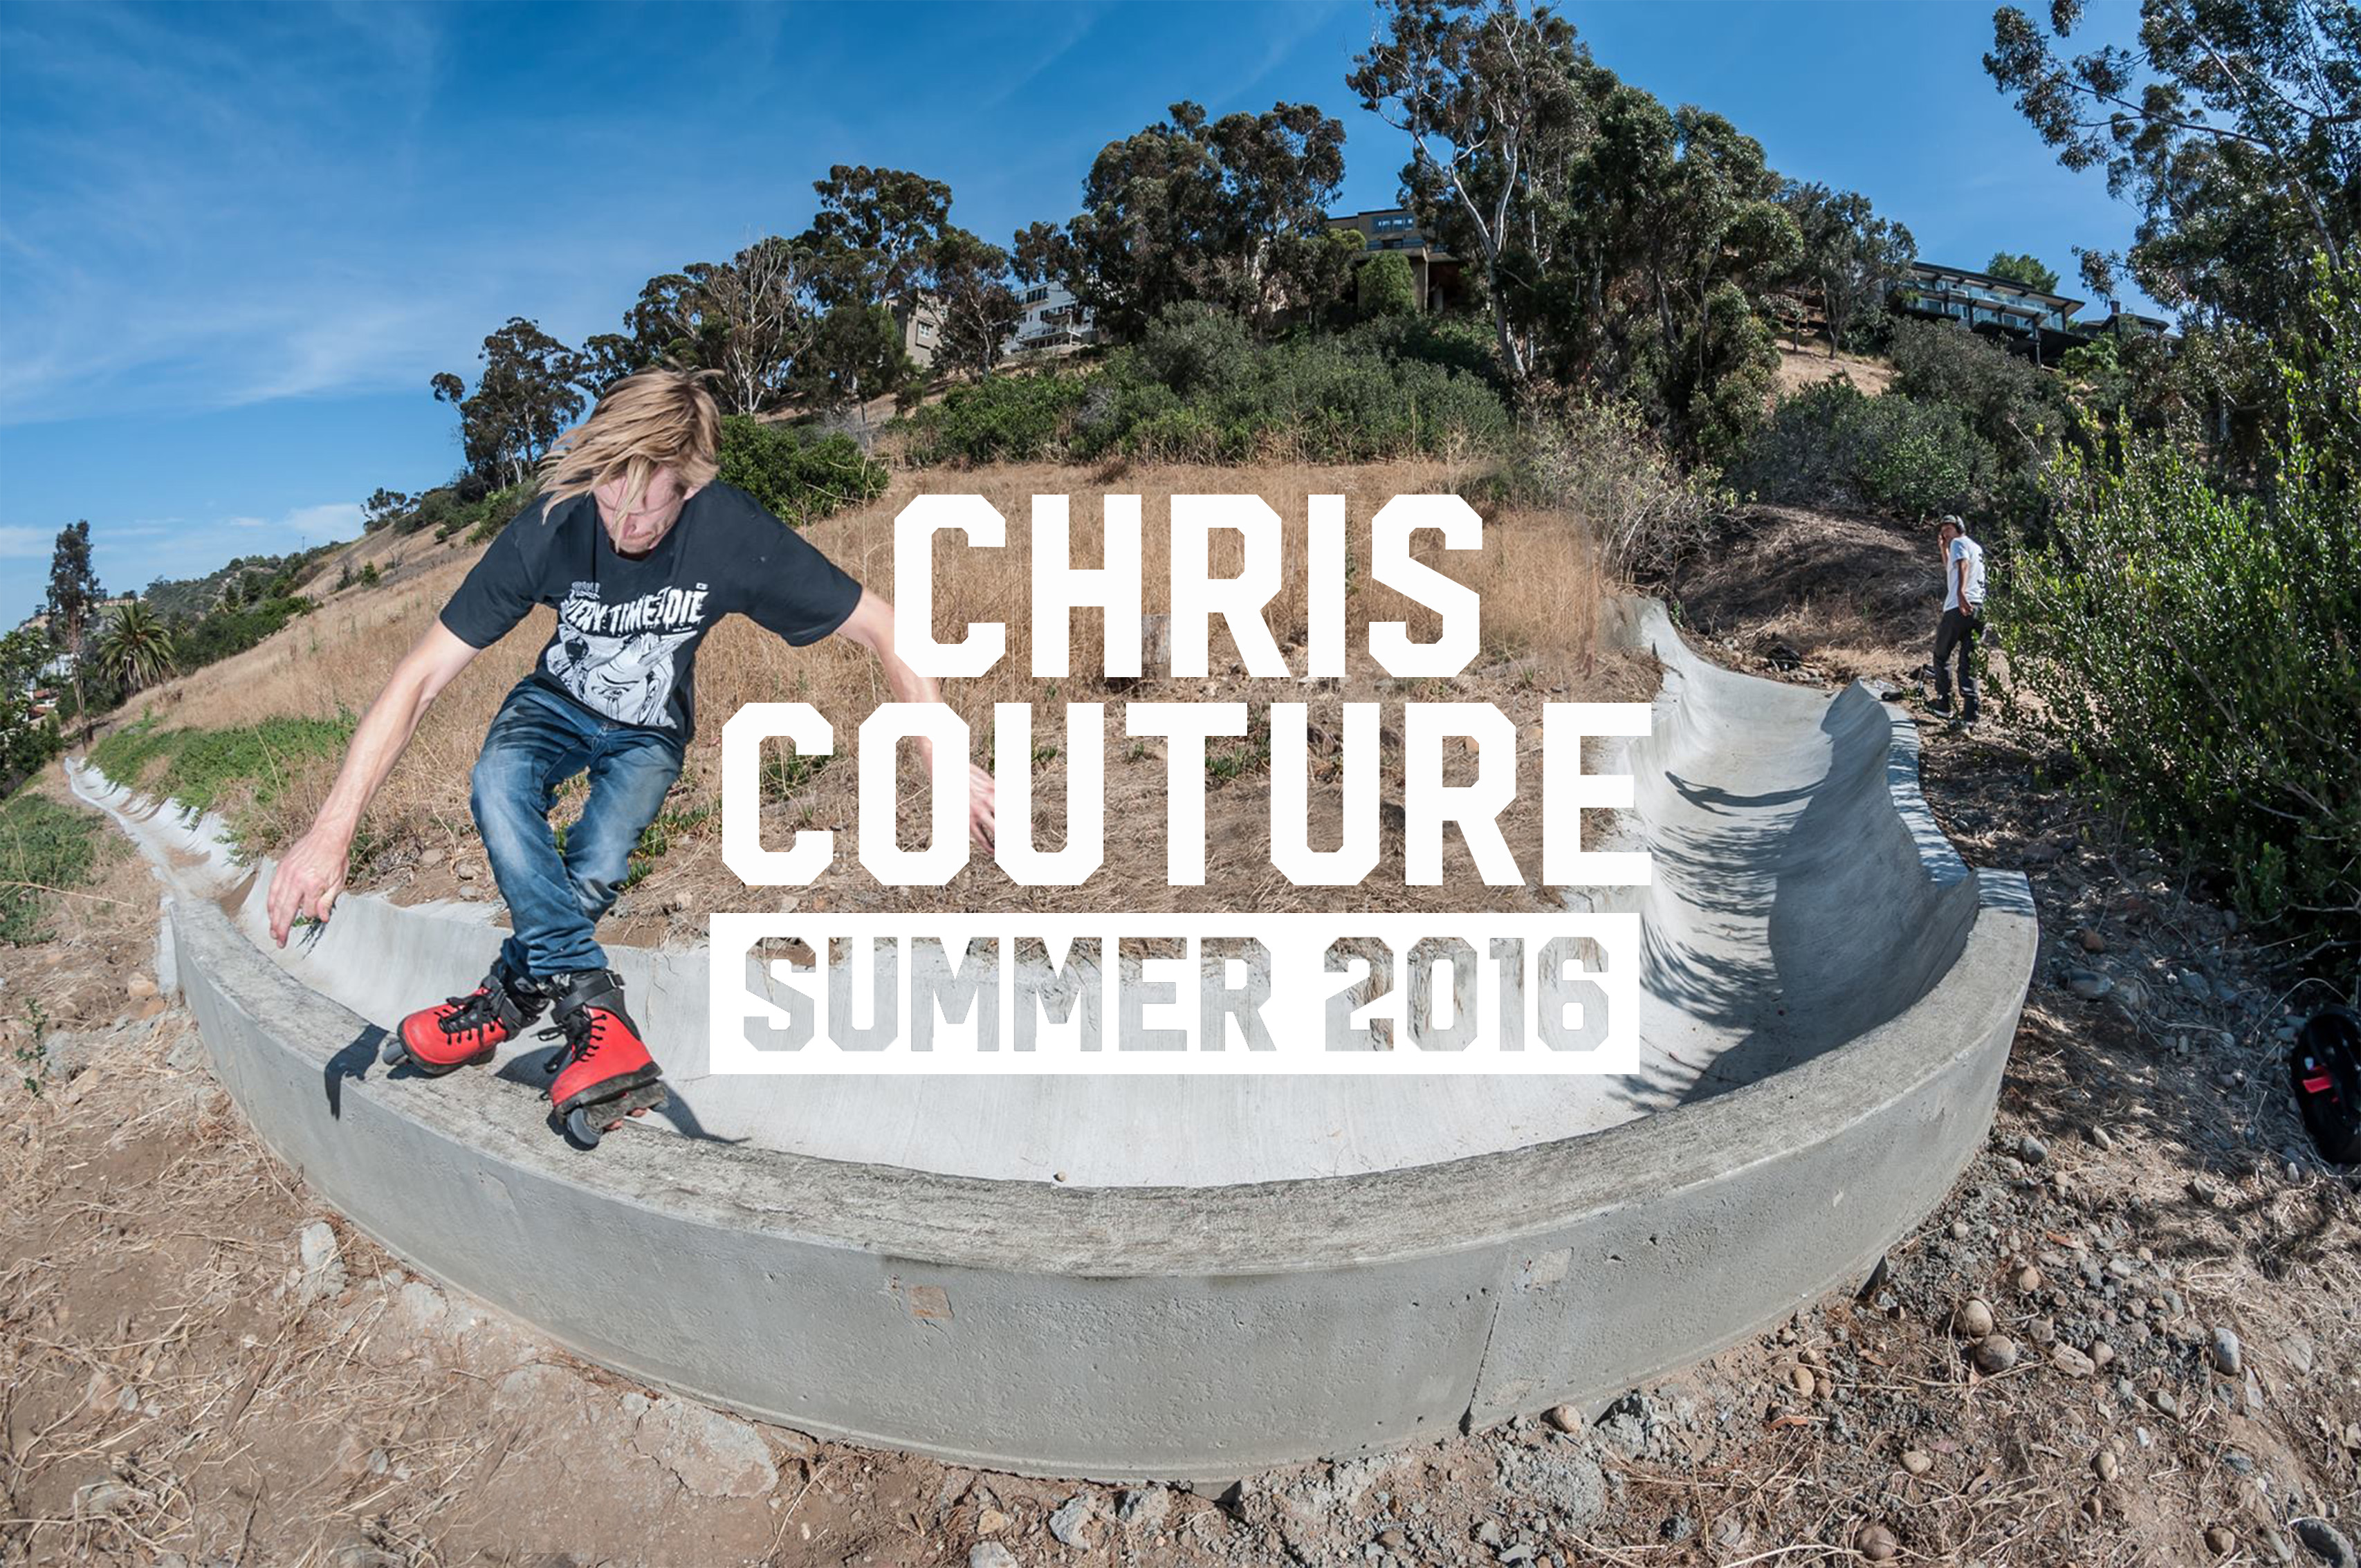 Chris Couture | Summer 2016 Edit